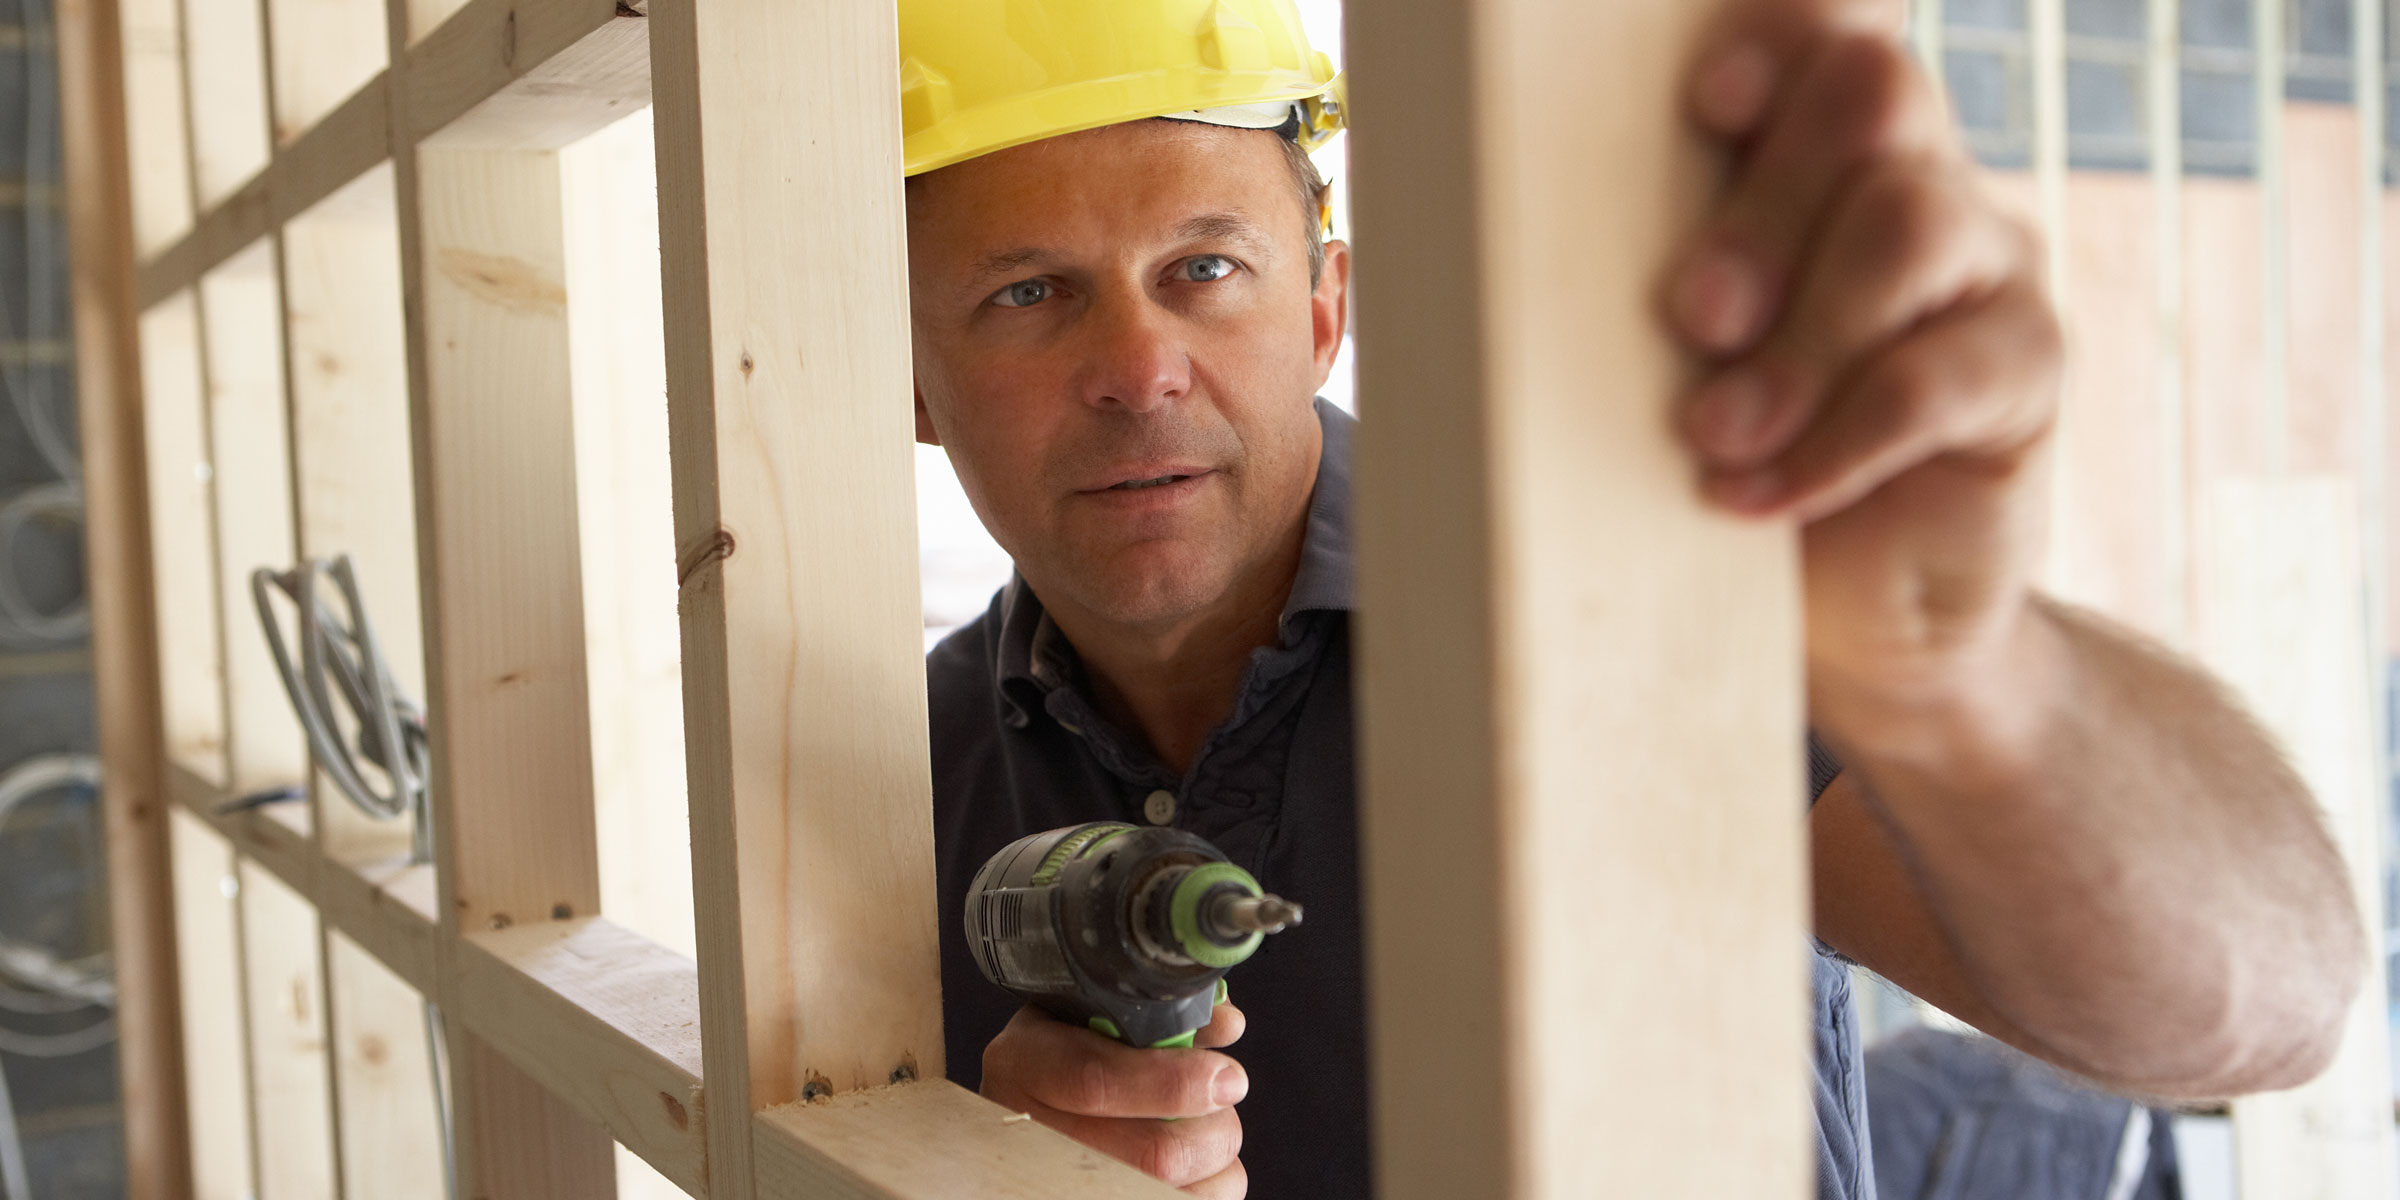 Hire a Licensed Building Practitioner - What to look for